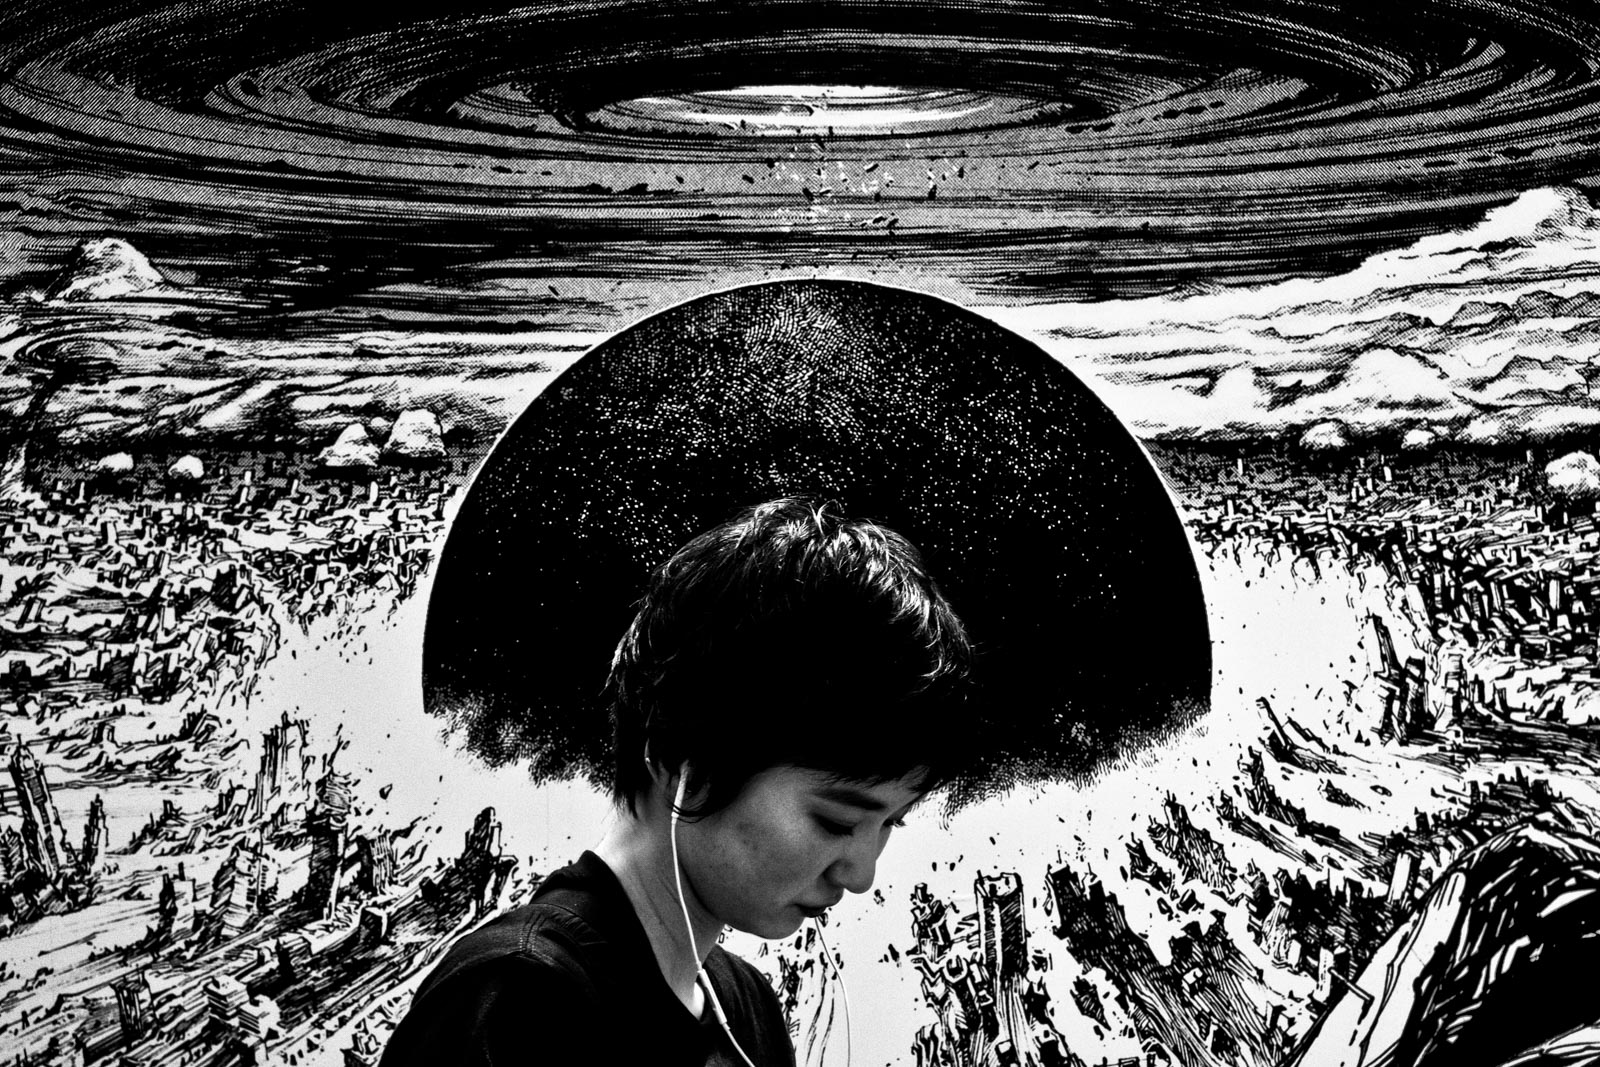 Japanese girl in front of explosion from the anime Akira. Street Photography by Victor Borst